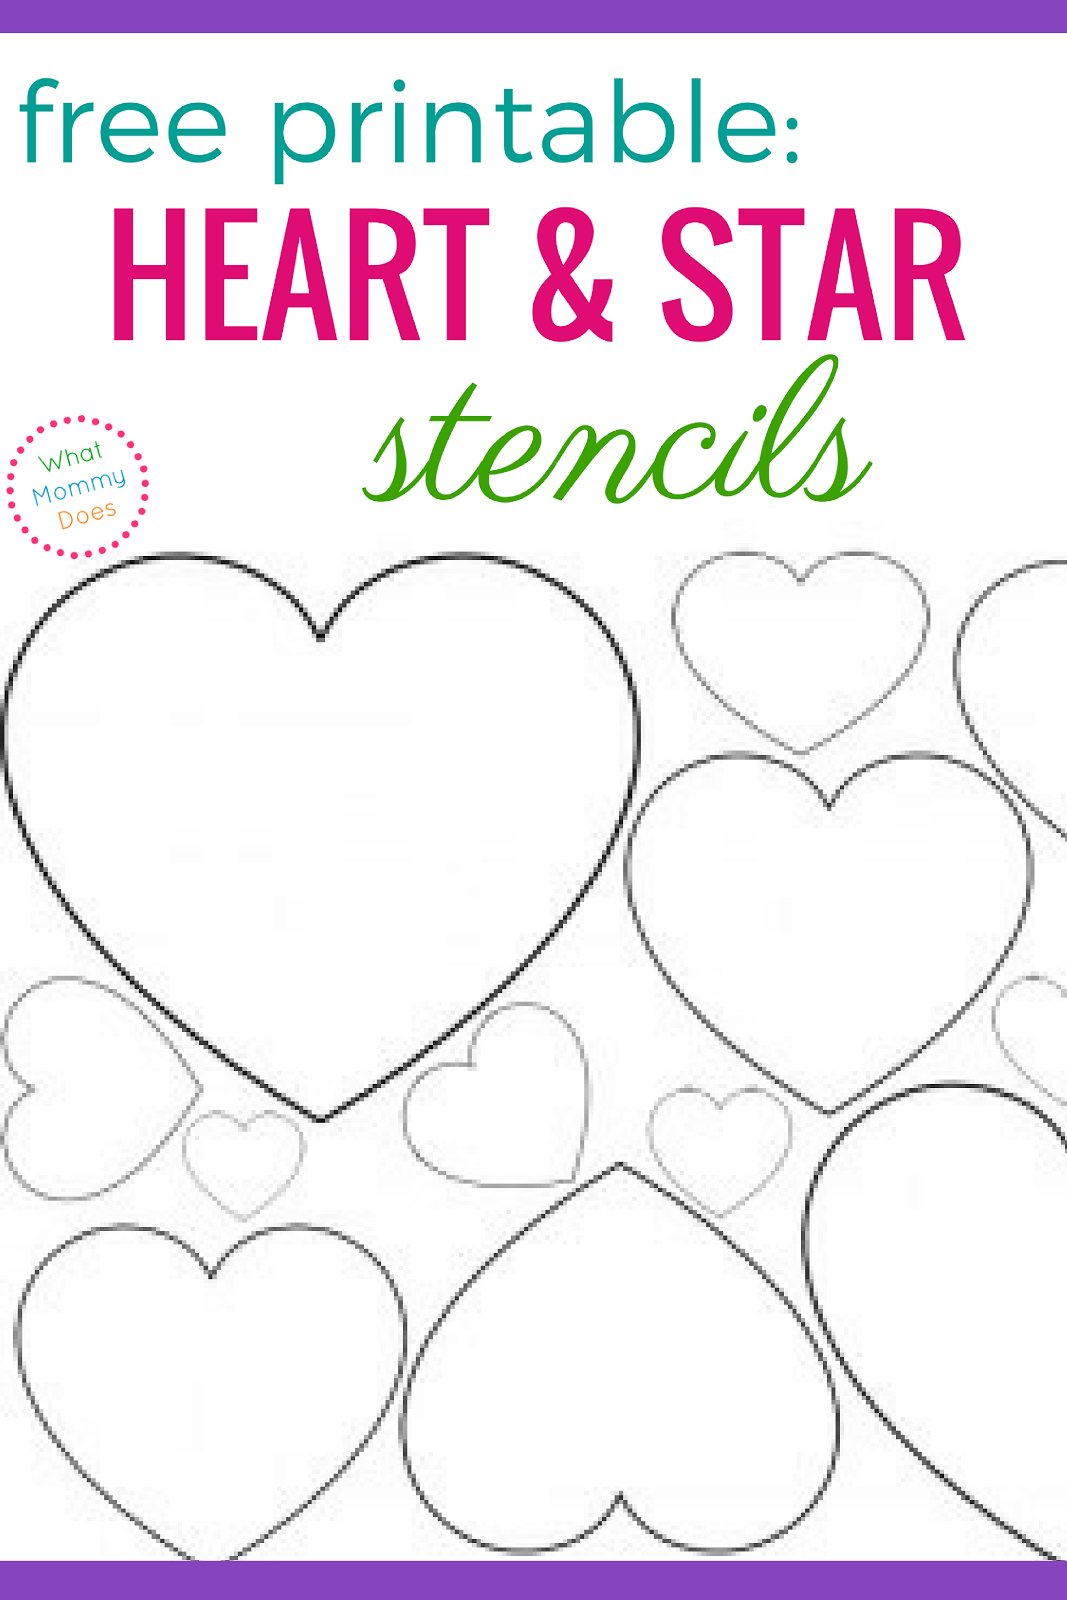 Free printable heart stencils star templates what mommy does download these free printable heart stencils and star templates for all of your diy projects pronofoot35fo Images